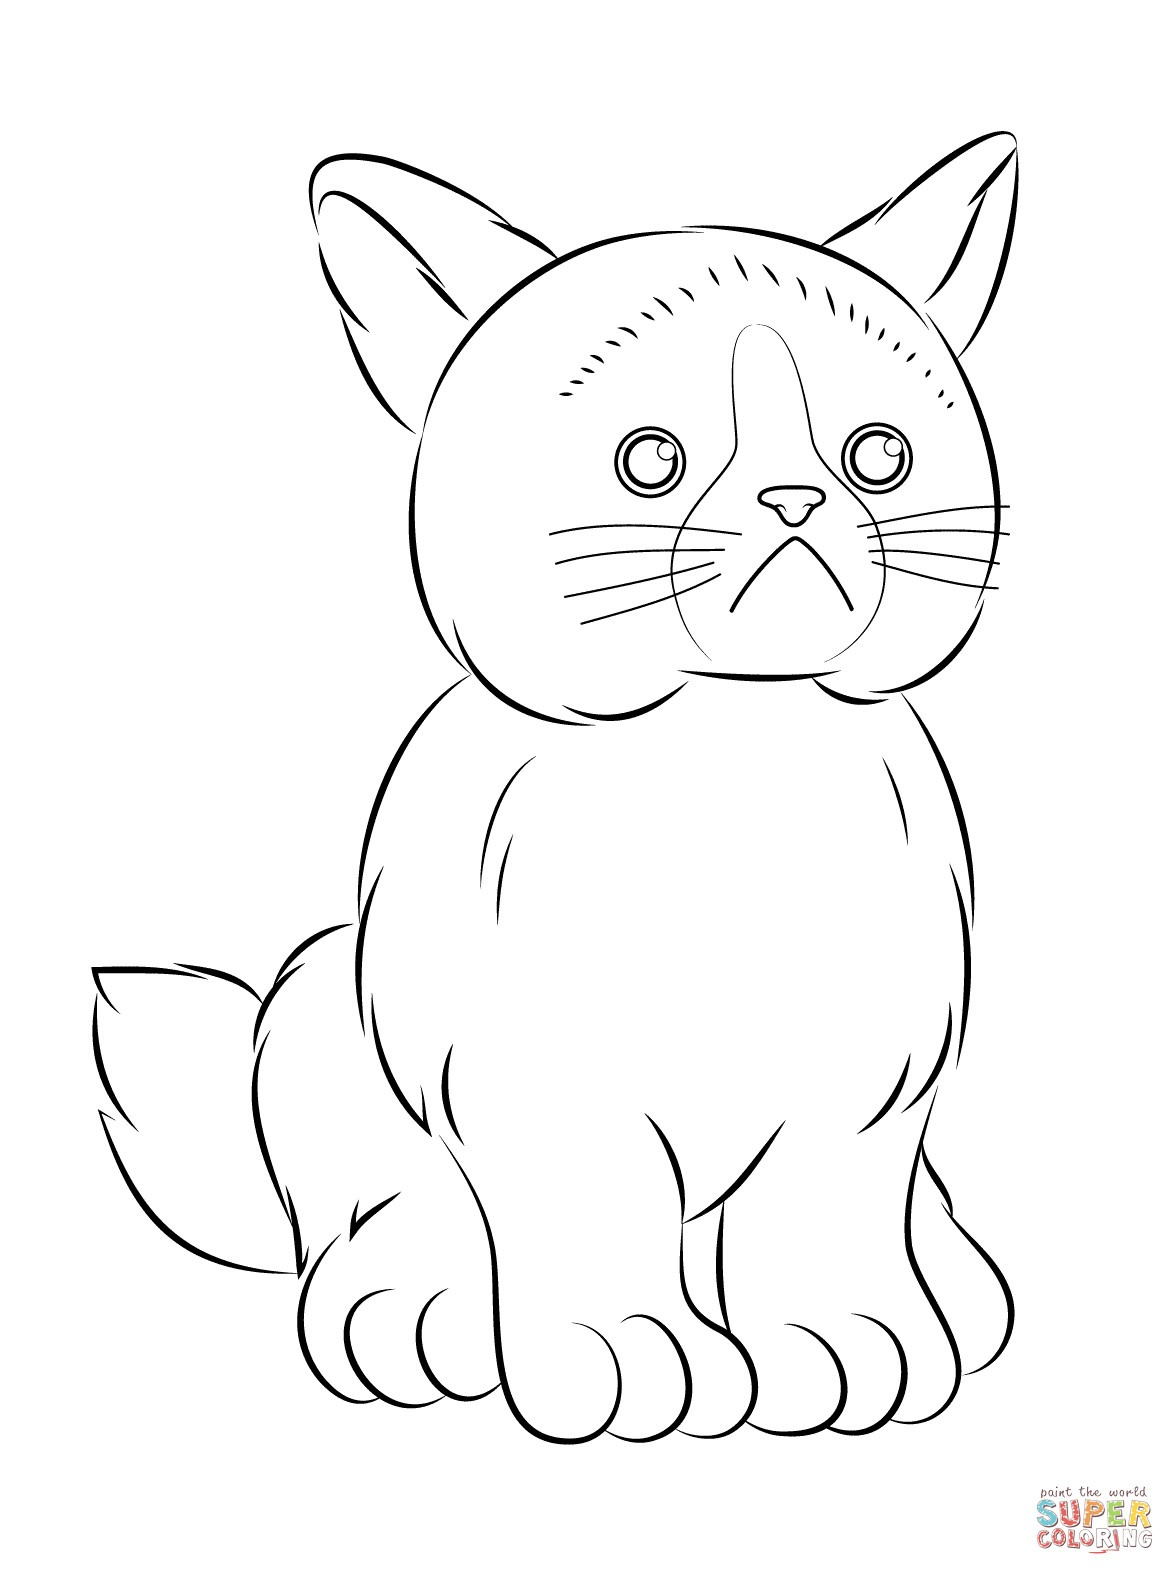 Webkinz Grumpy Cat Coloring Page Free Printable Pages Beauteous